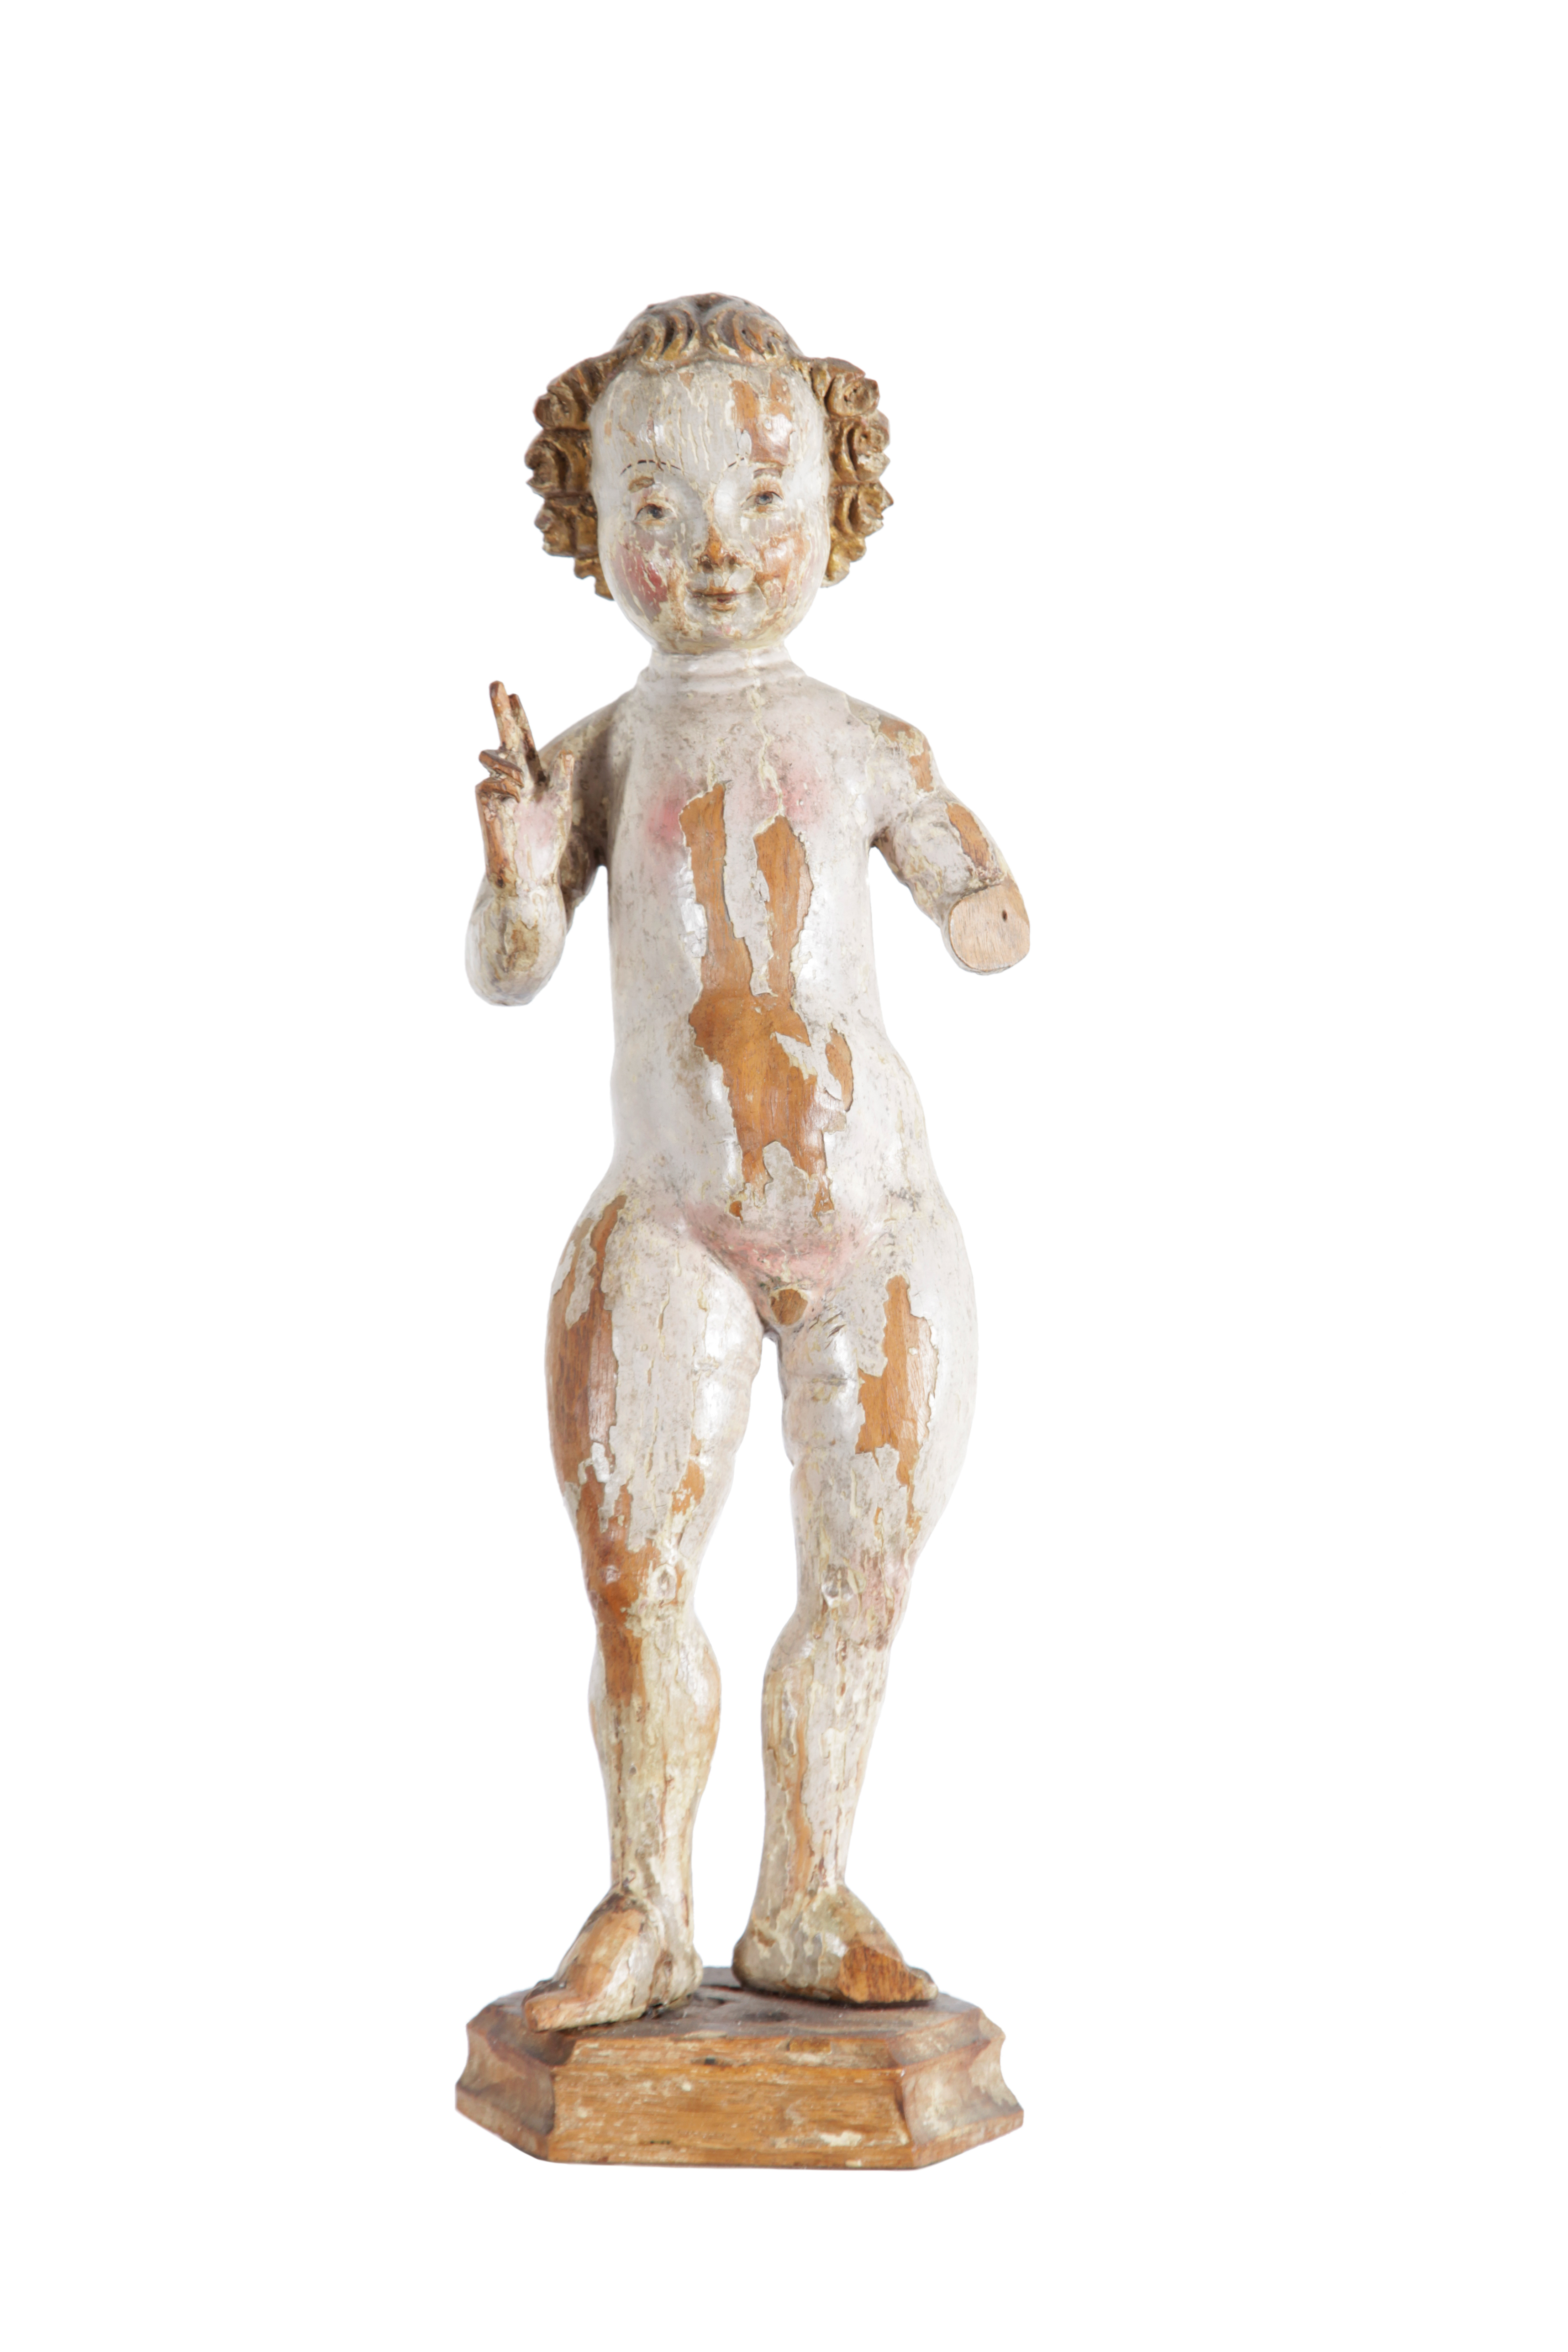 A sculpture representing the Christ Child